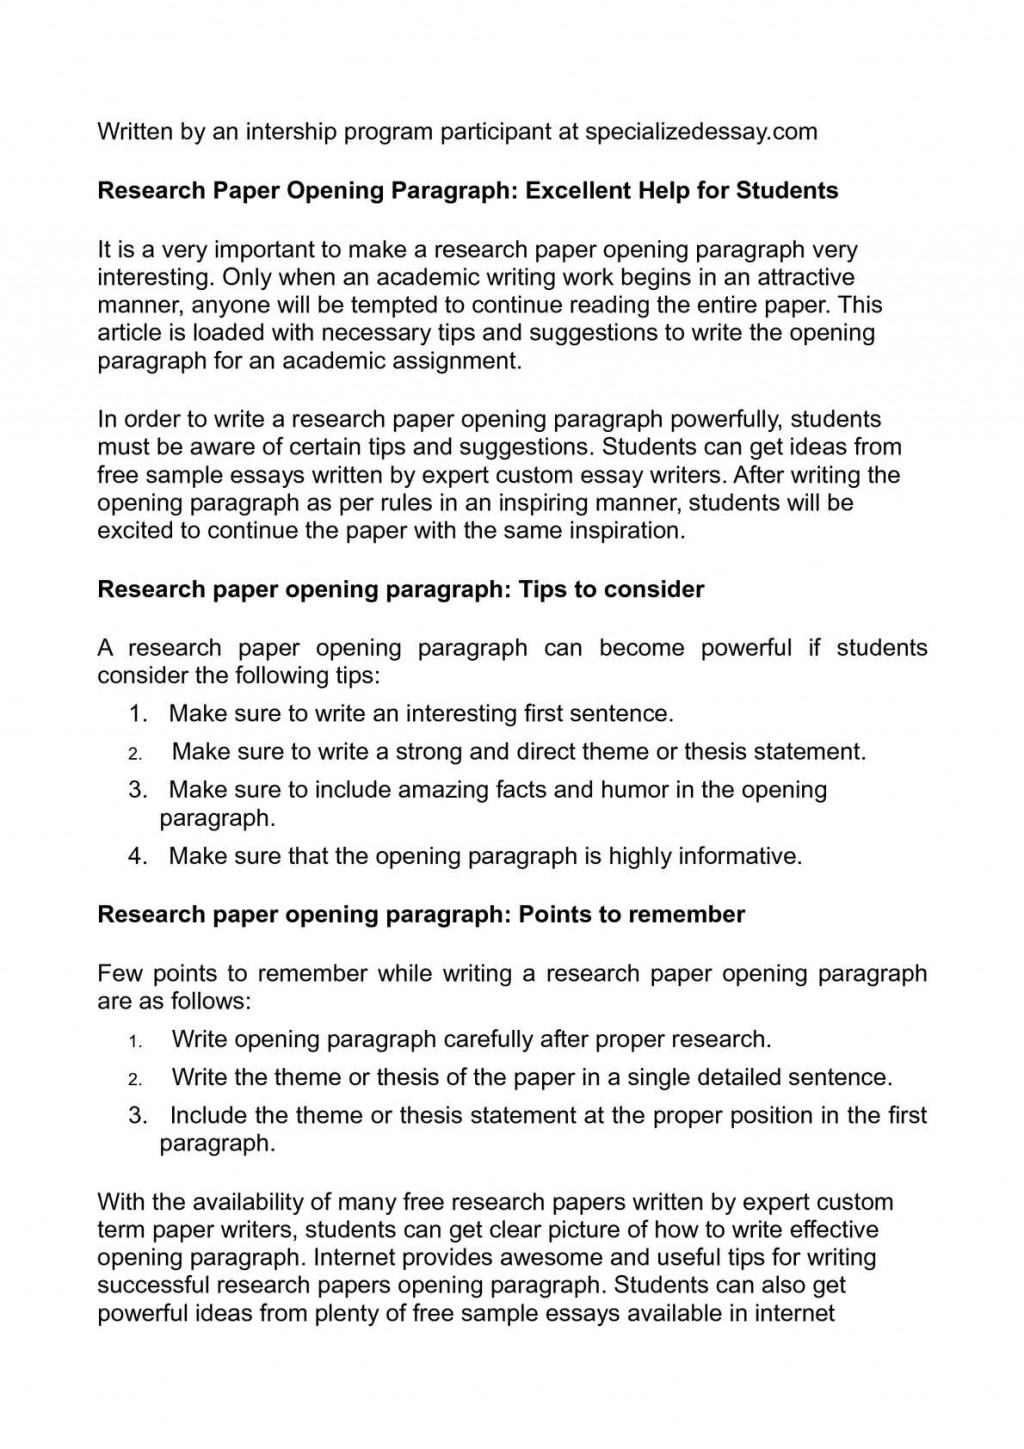 006 P1 How To Start Research Paper Frightening Paragraph Your First Body In A Conclusion Large